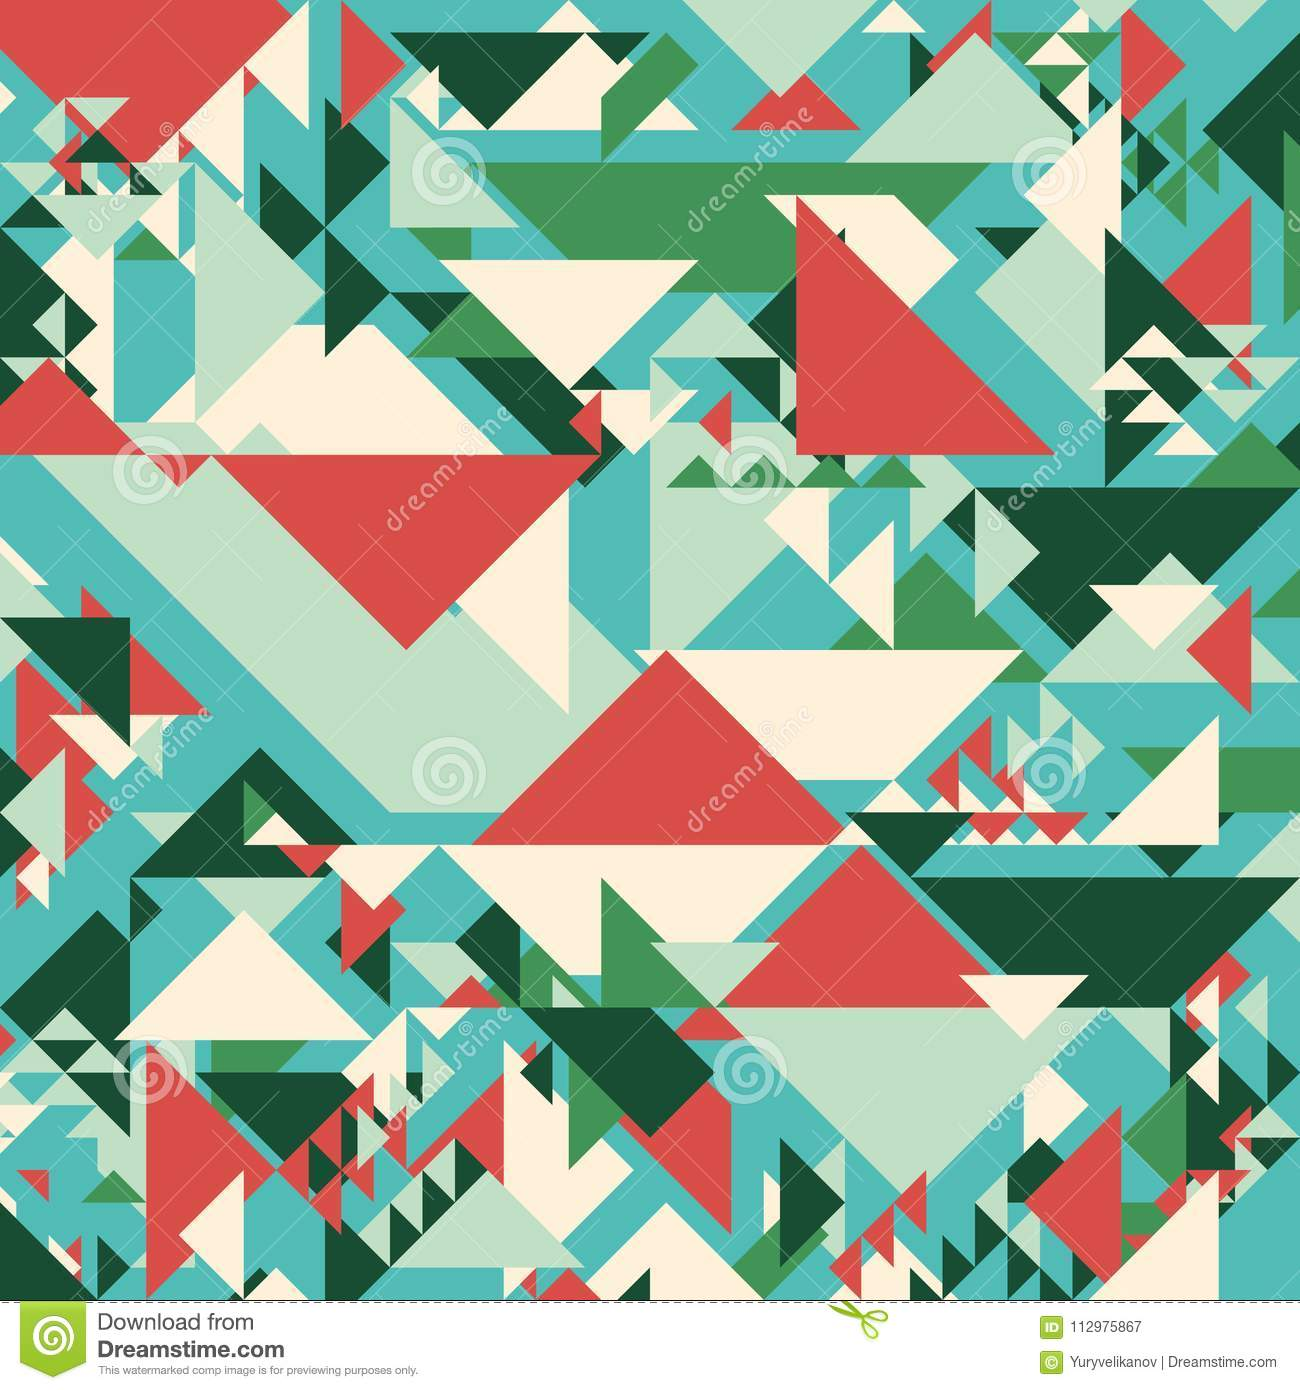 Abstract geometric background. Modern overlapping large and small triangles.